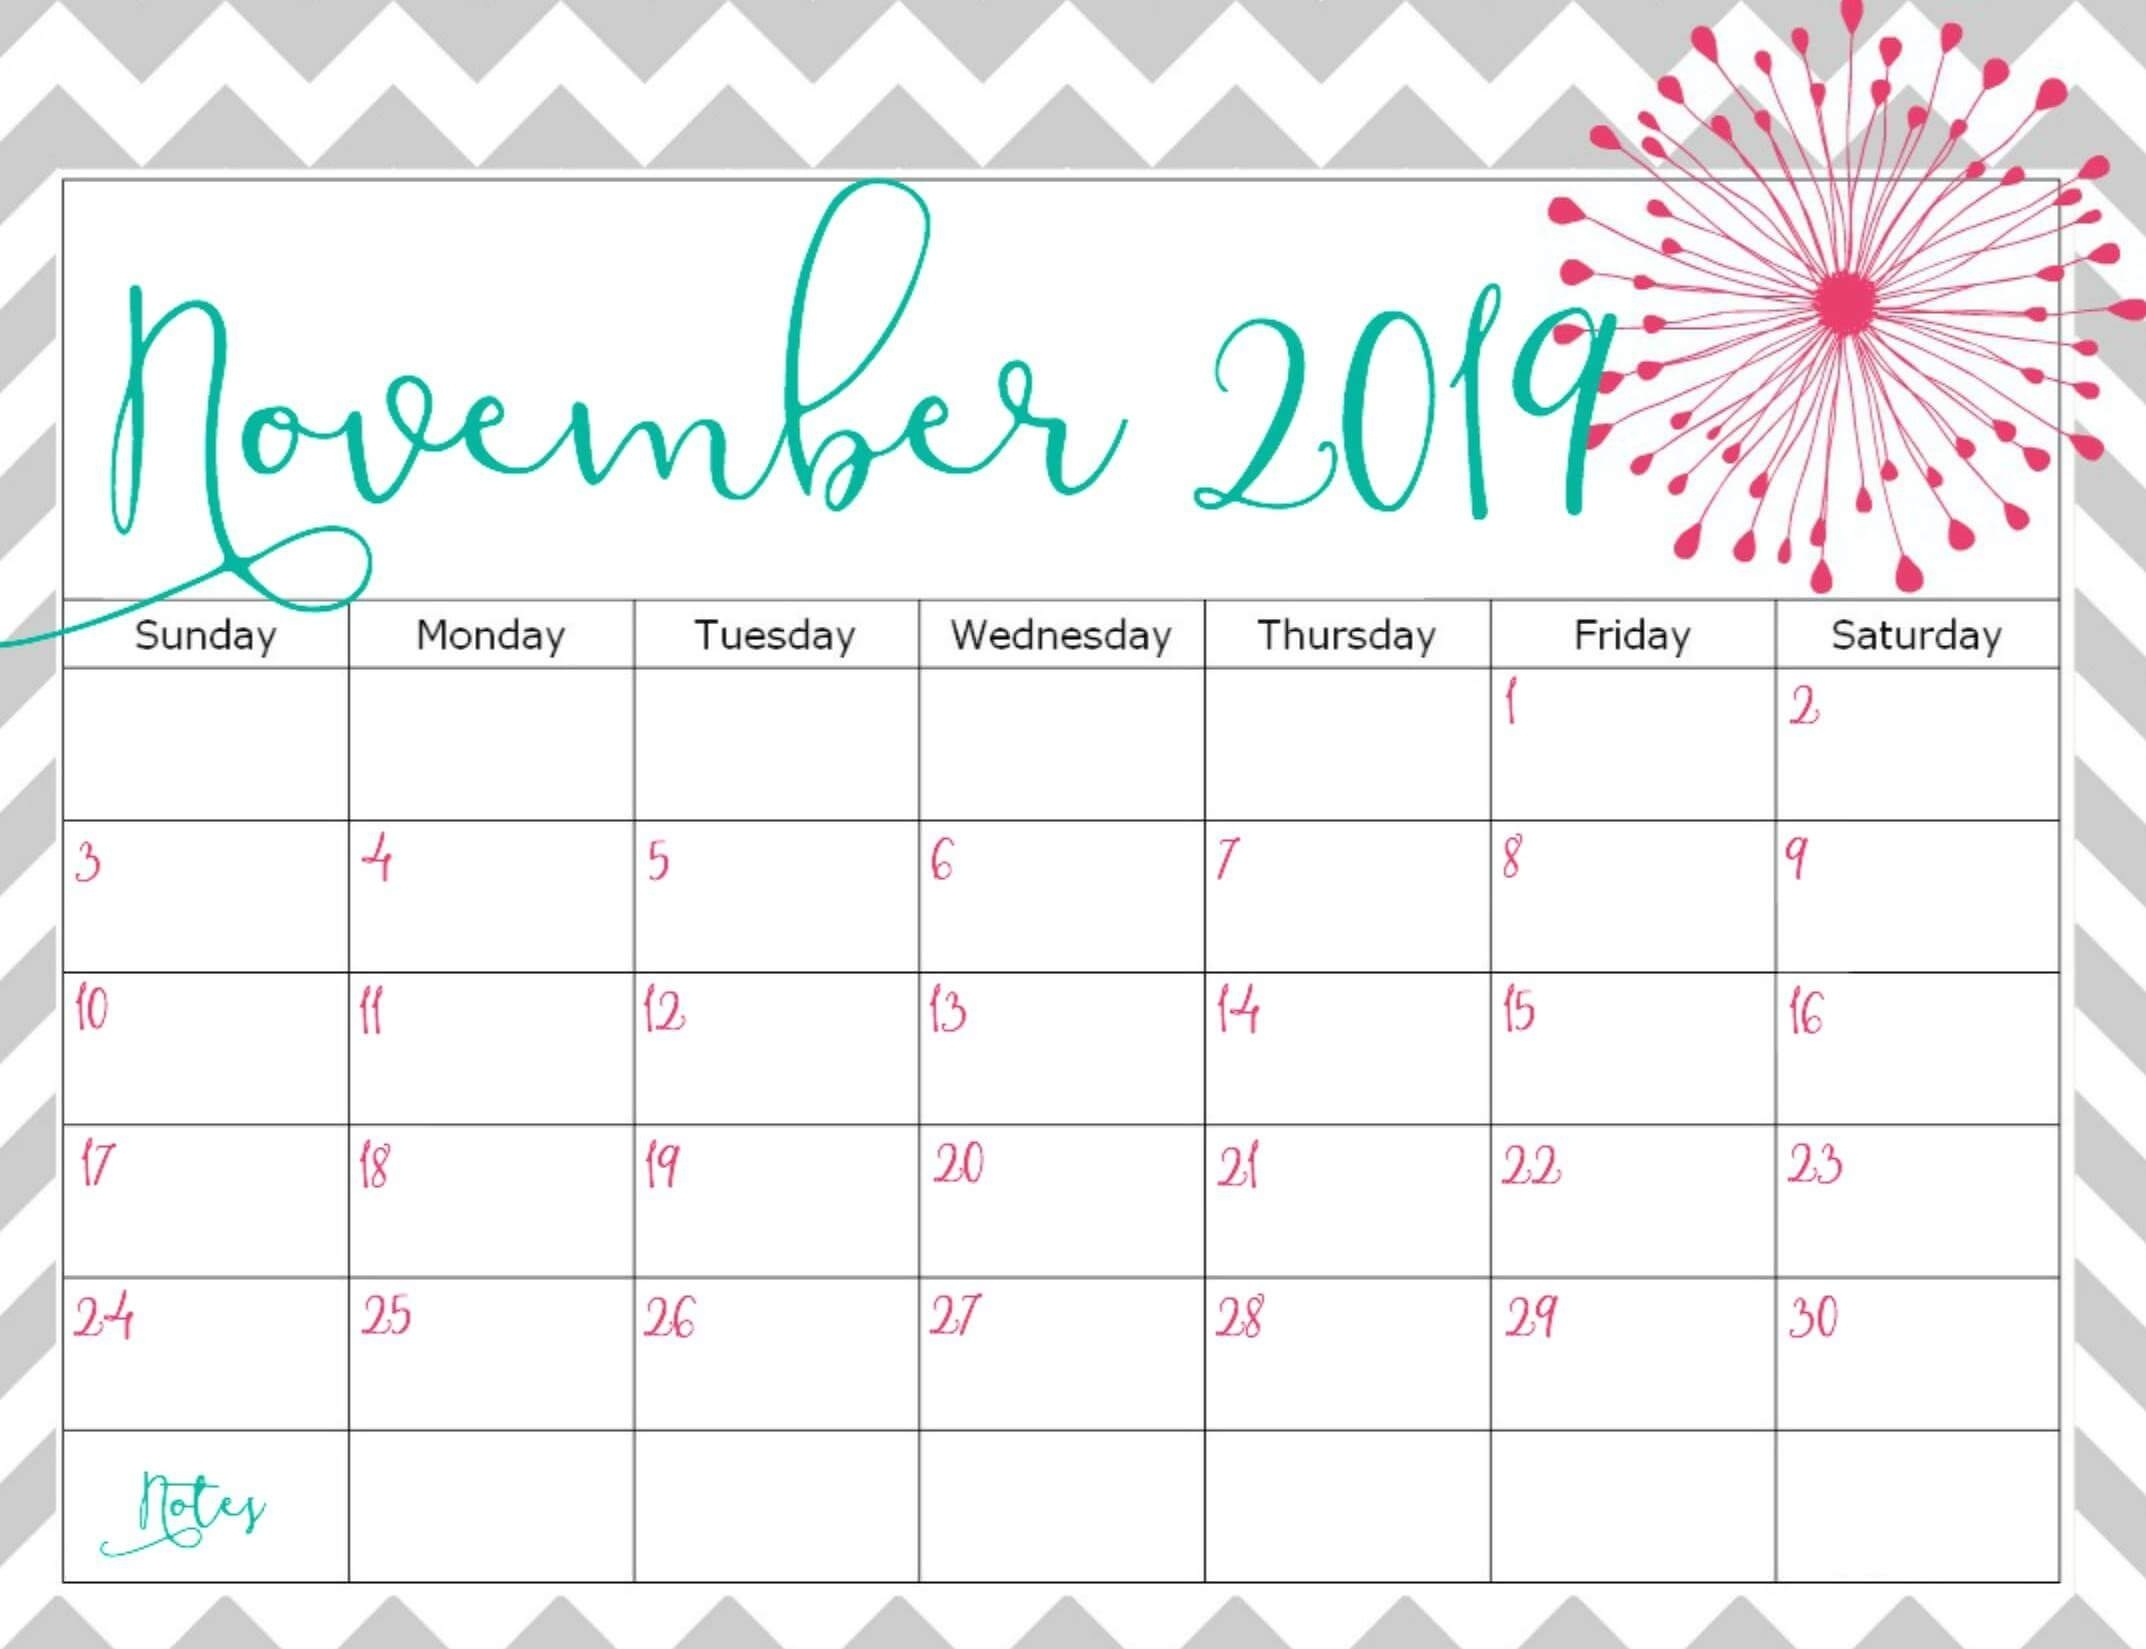 Cute November 2019 Calendar Printable Images - Set Your Plan